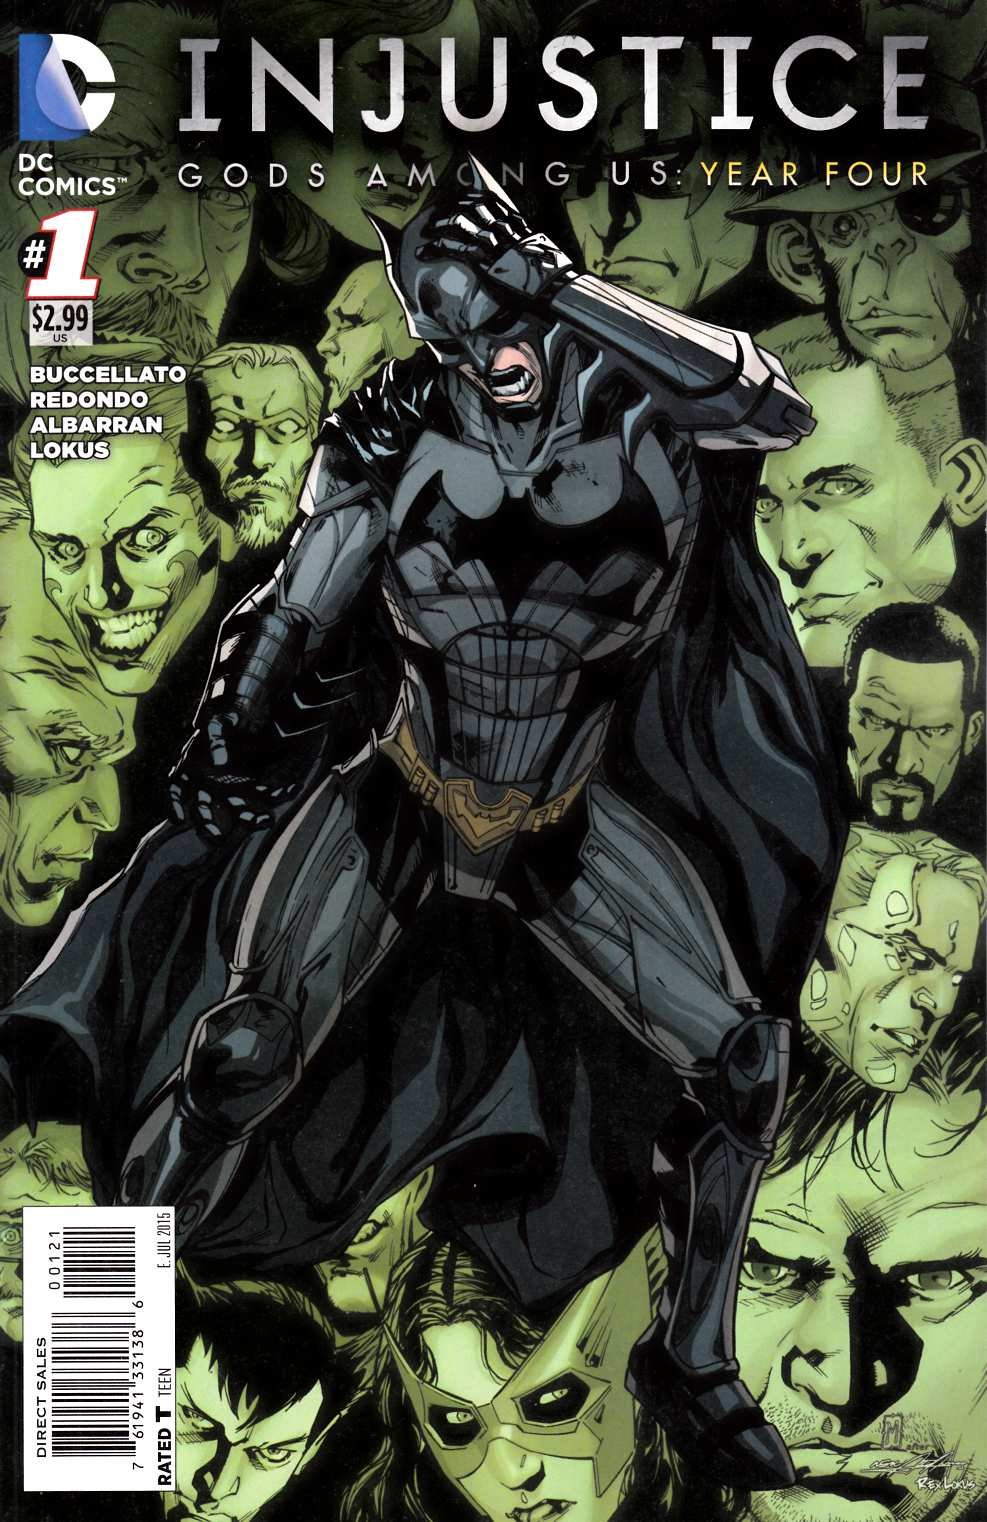 Injustice - Gods Among Us: Year Four 001 (July 2015) (variant)